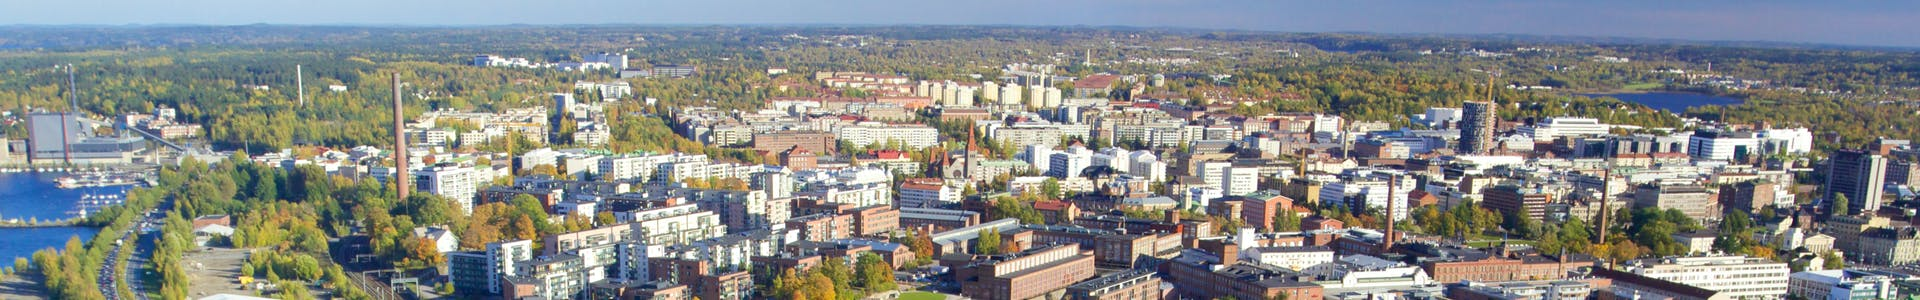 Studying in Tampere, Finland